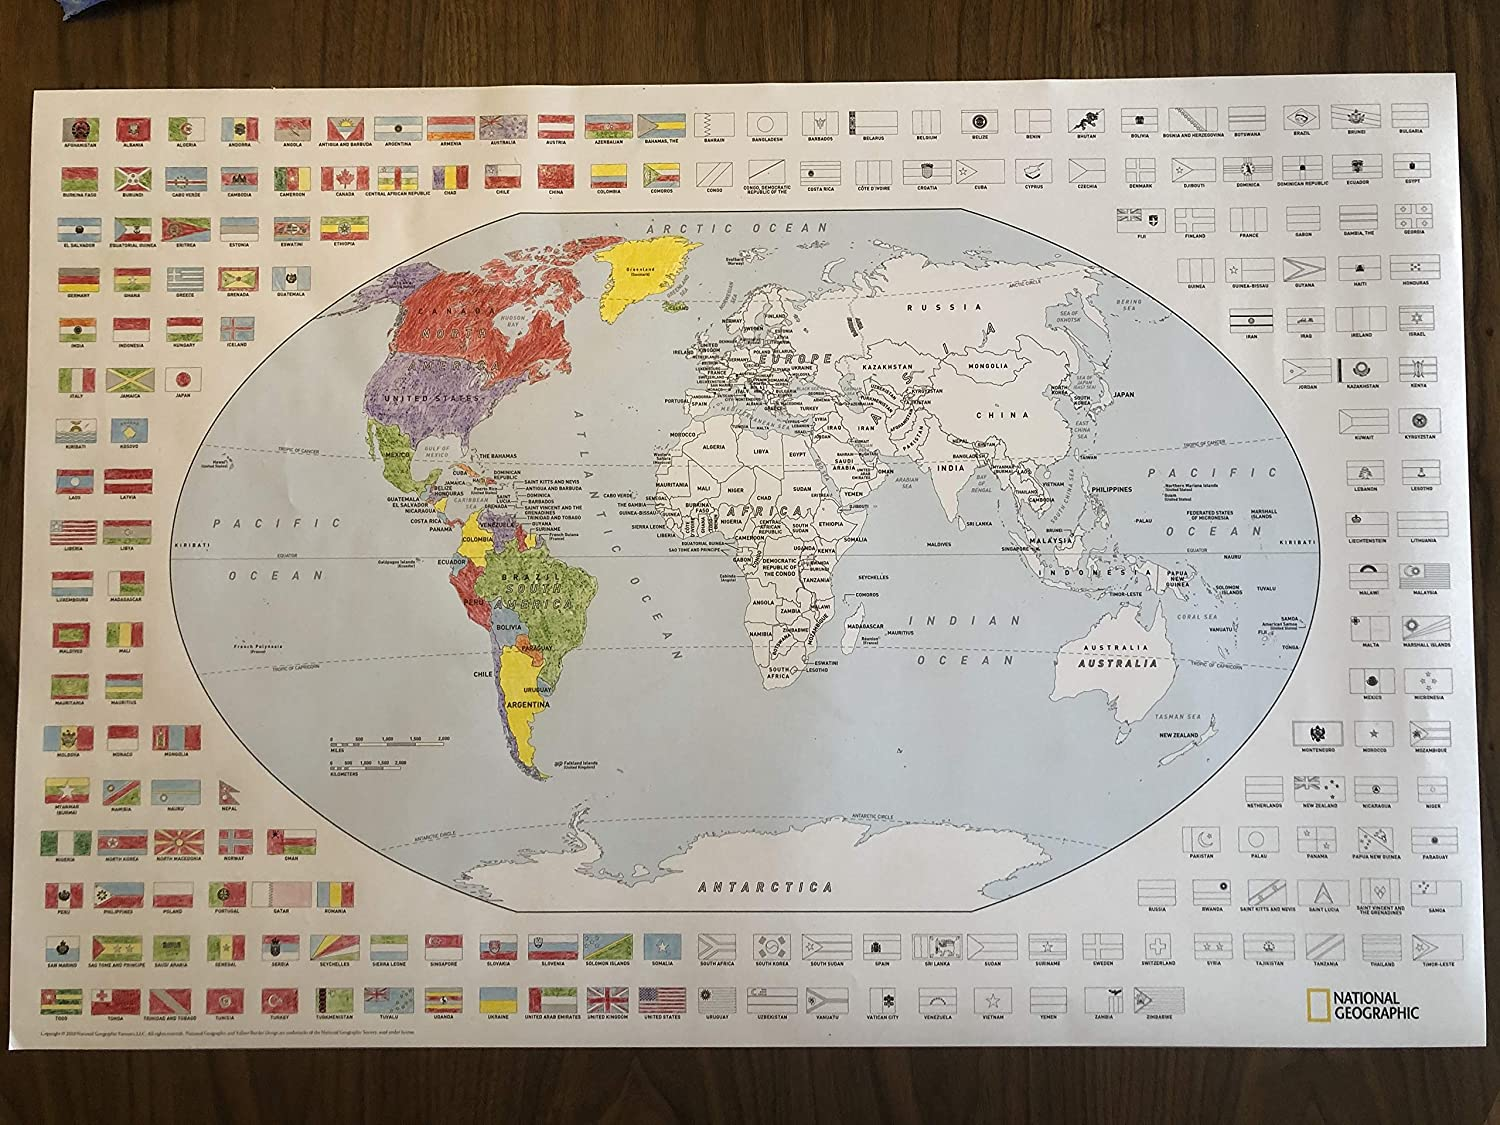 24 x 36 inches Rolled Poster NATIONAL GEOGRAPHIC World Coloring Map /& Flags